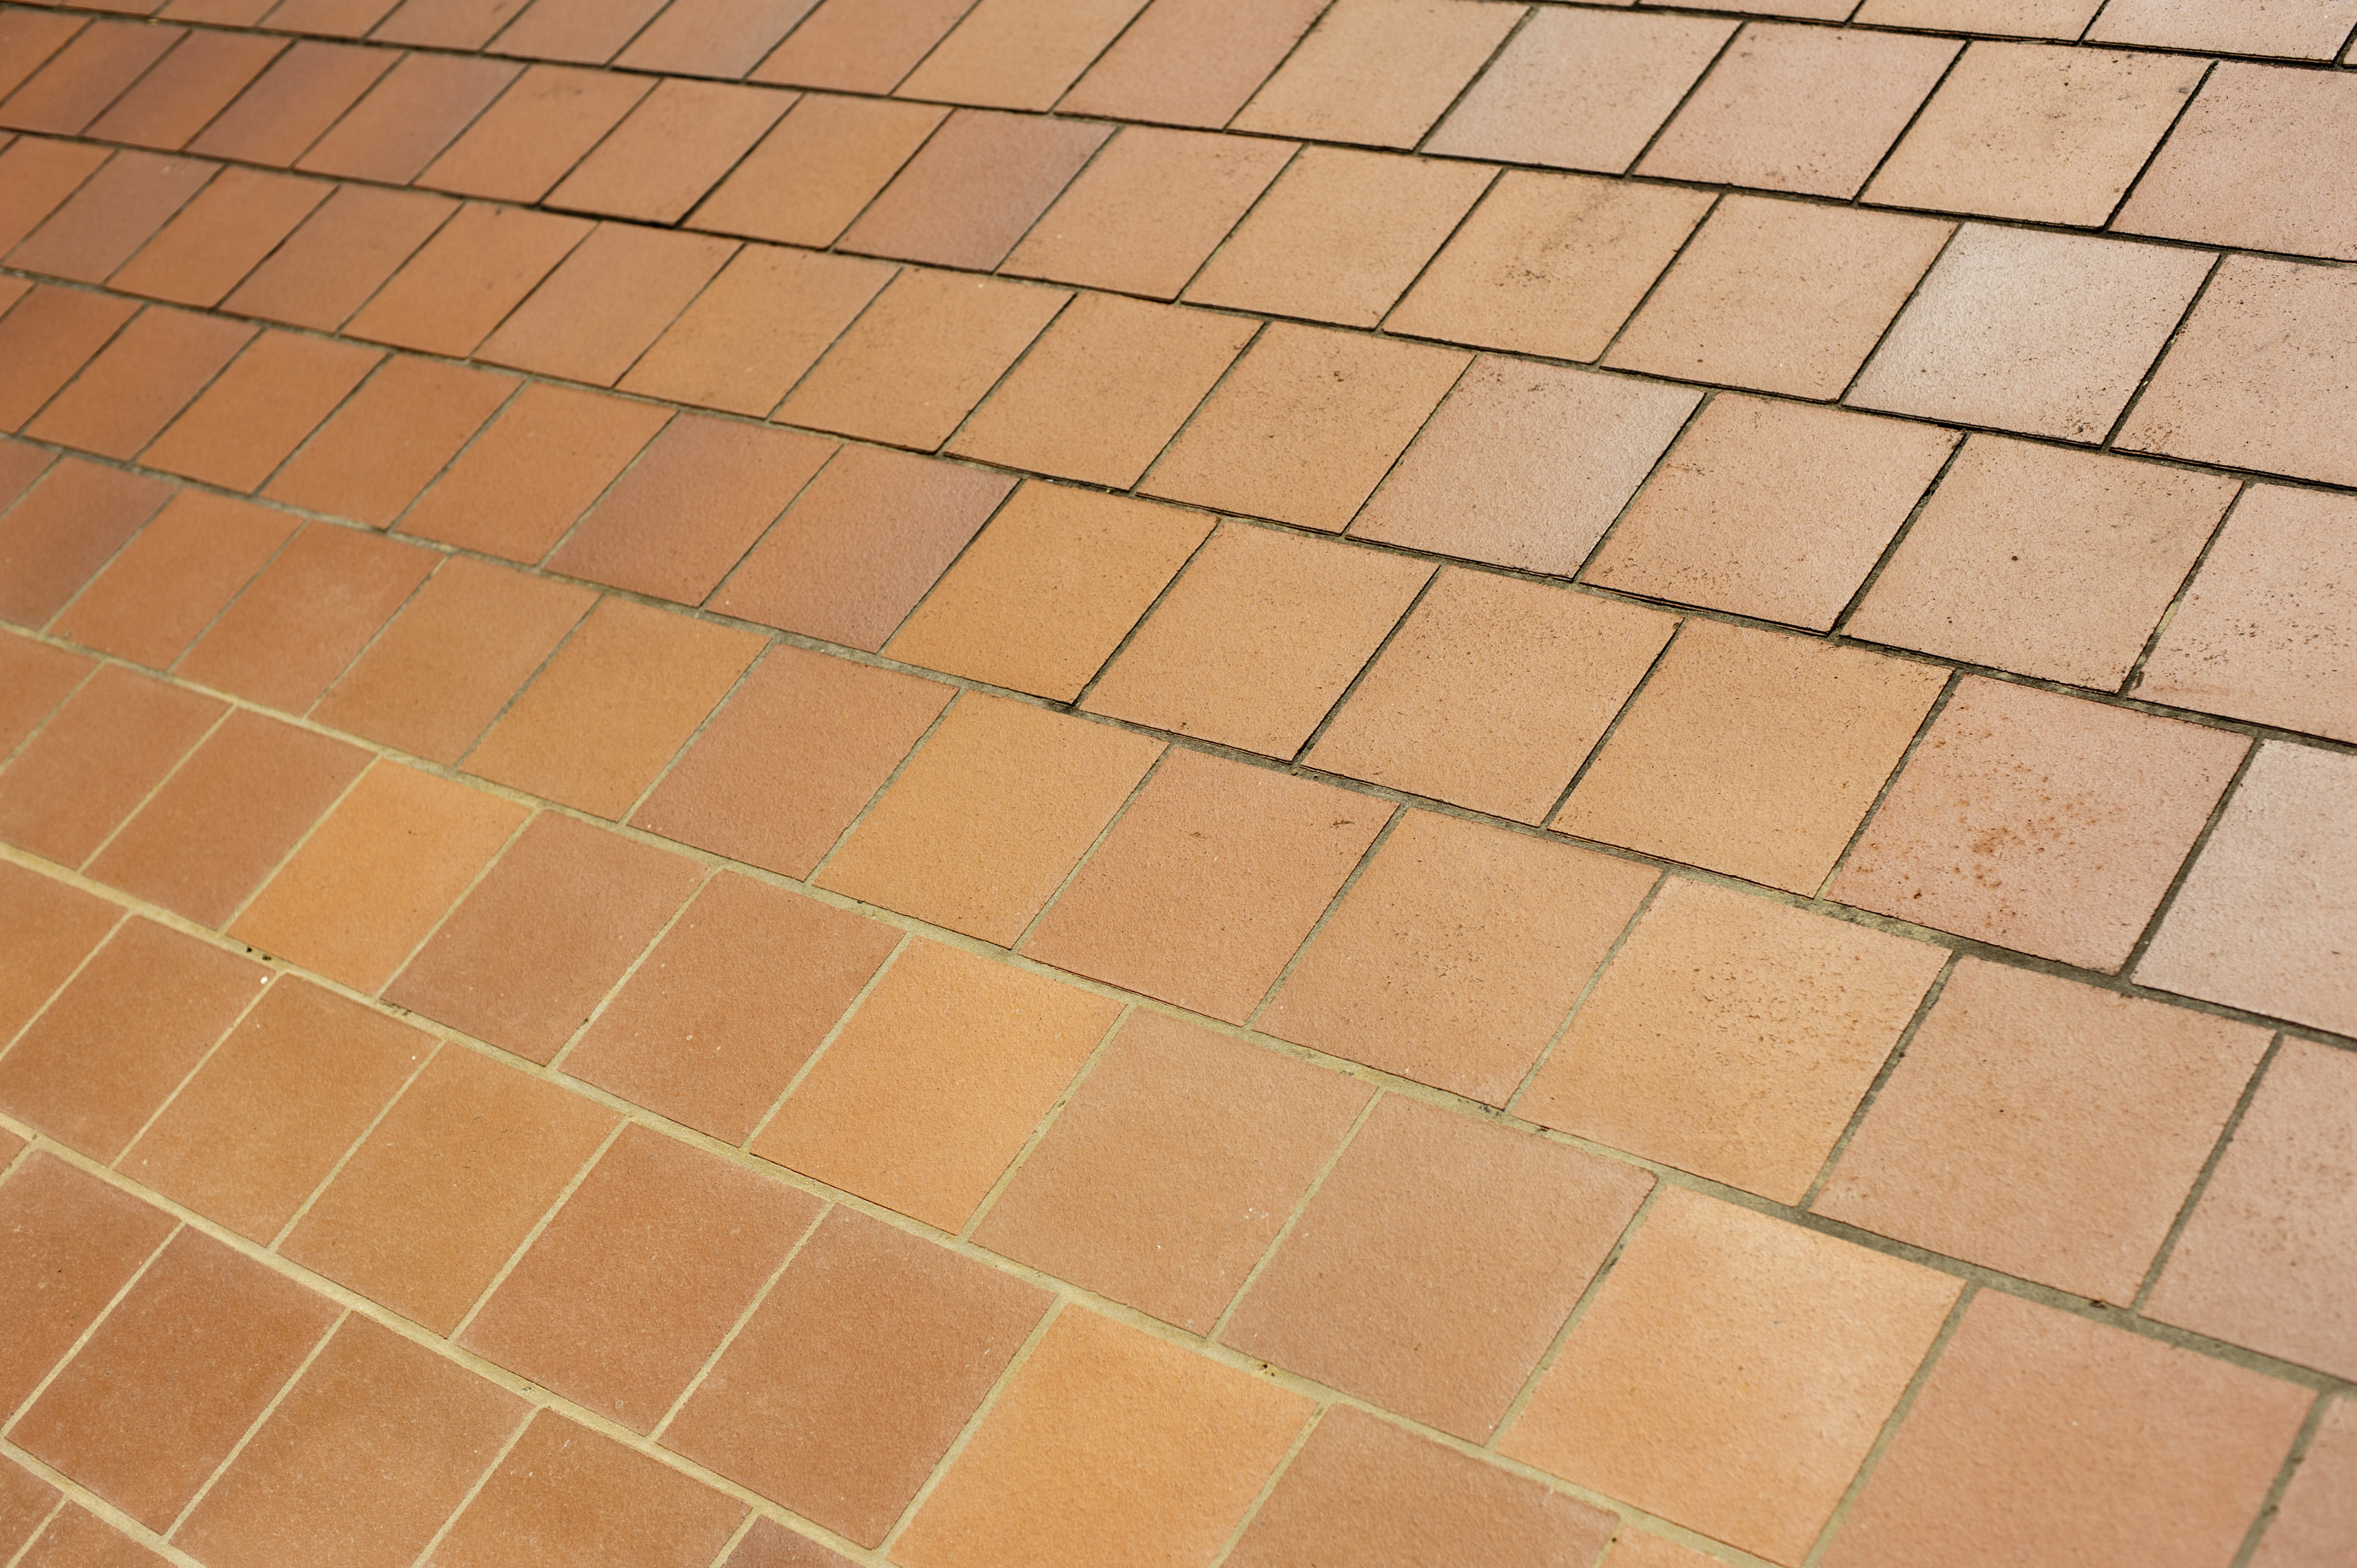 Oblique view of brown ceramic floor tiles in a receding perspective in a full frame architectural background